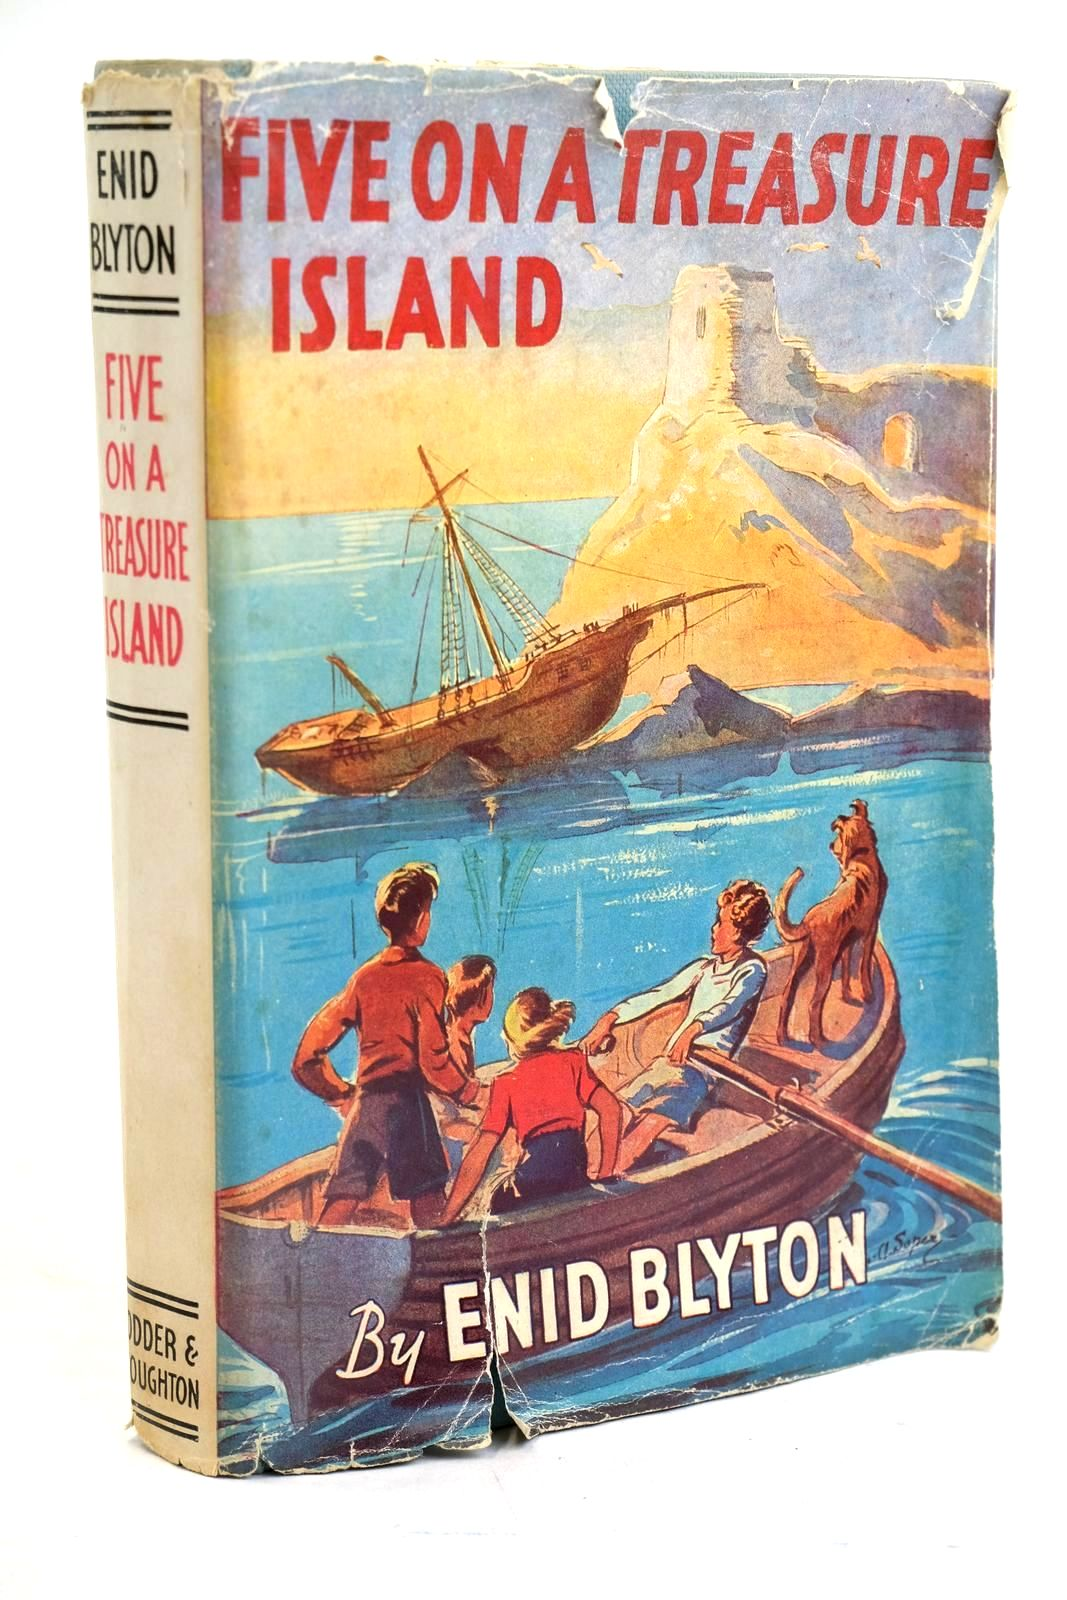 Photo of FIVE ON A TREASURE ISLAND written by Blyton, Enid illustrated by Soper, Eileen published by Hodder & Stoughton (STOCK CODE: 1320552)  for sale by Stella & Rose's Books